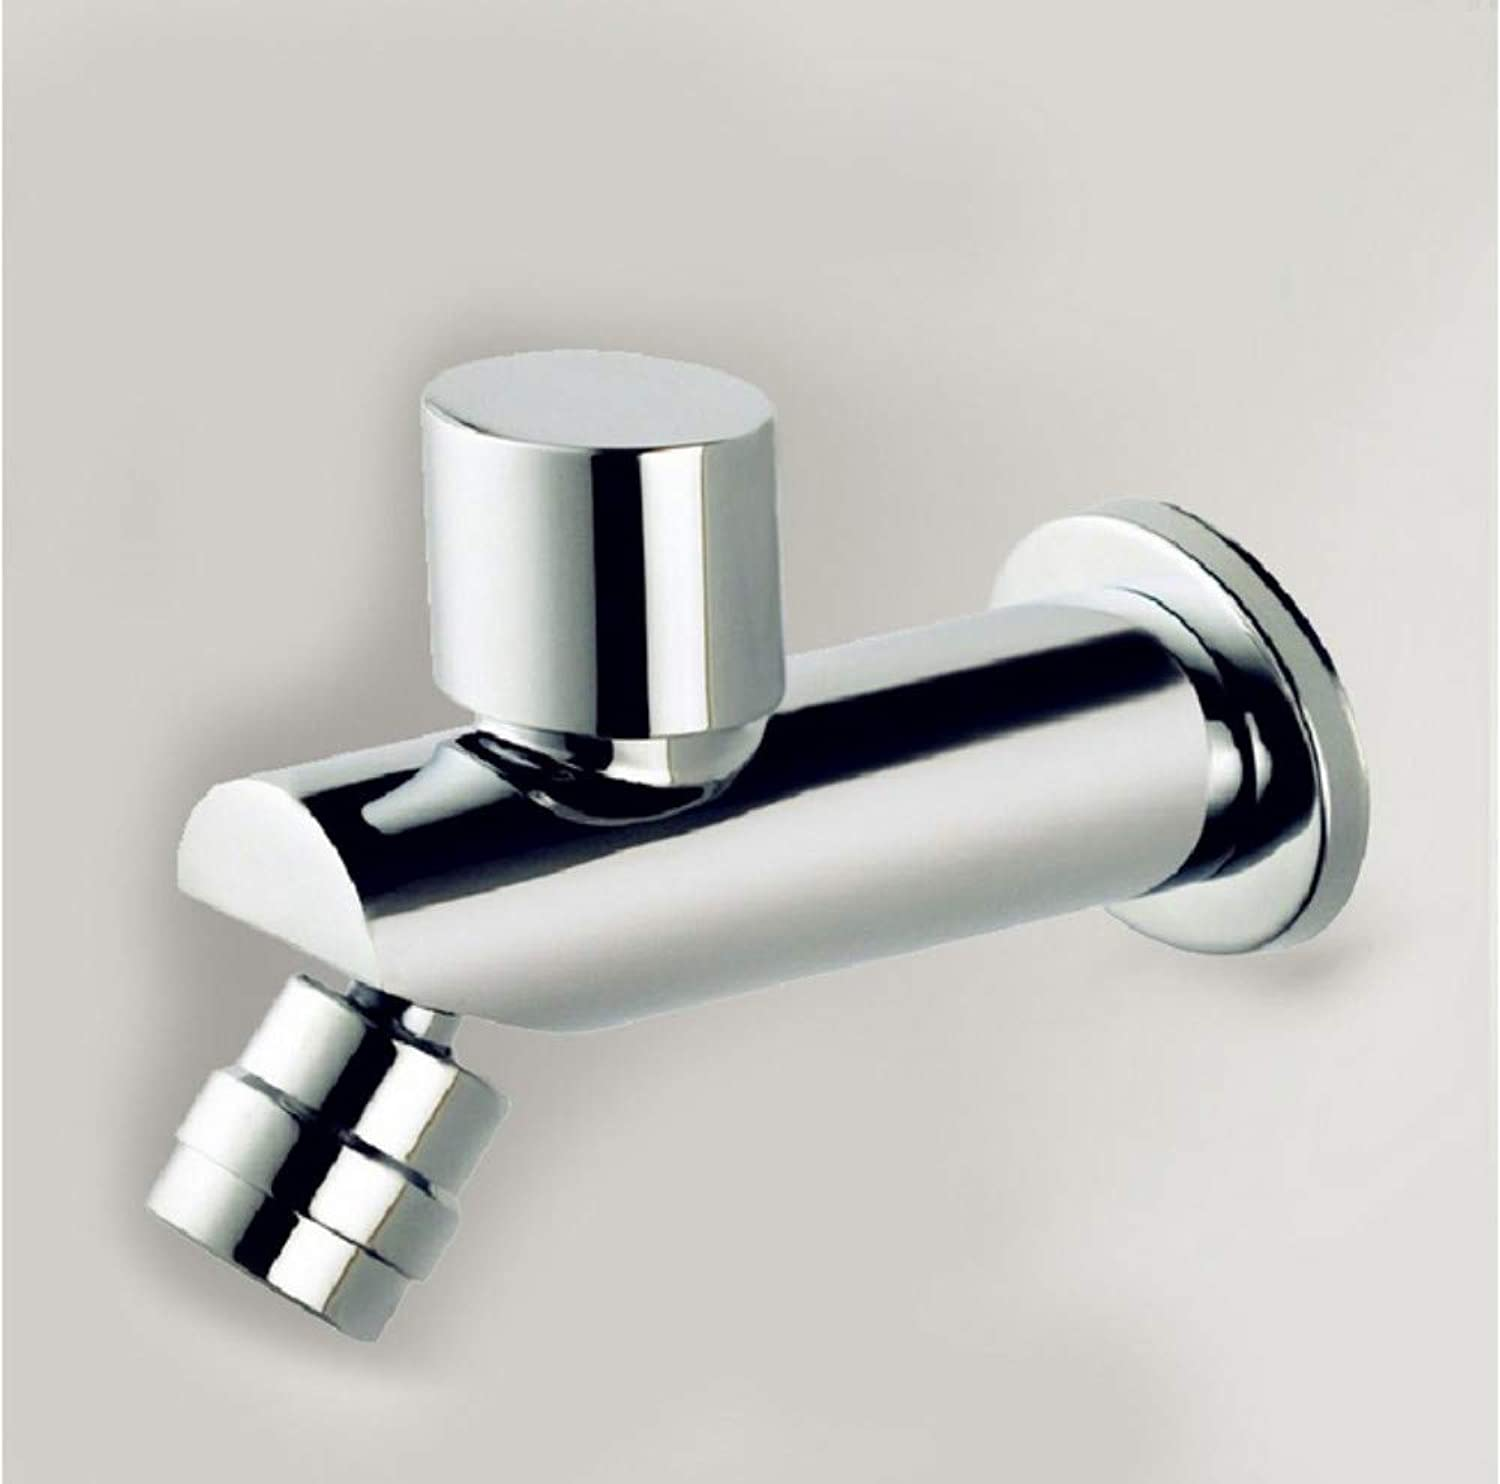 LLLYZZ Brass Cold Water Faucet, Wall Mounted Basin Tap Bibcock Cold Faucet